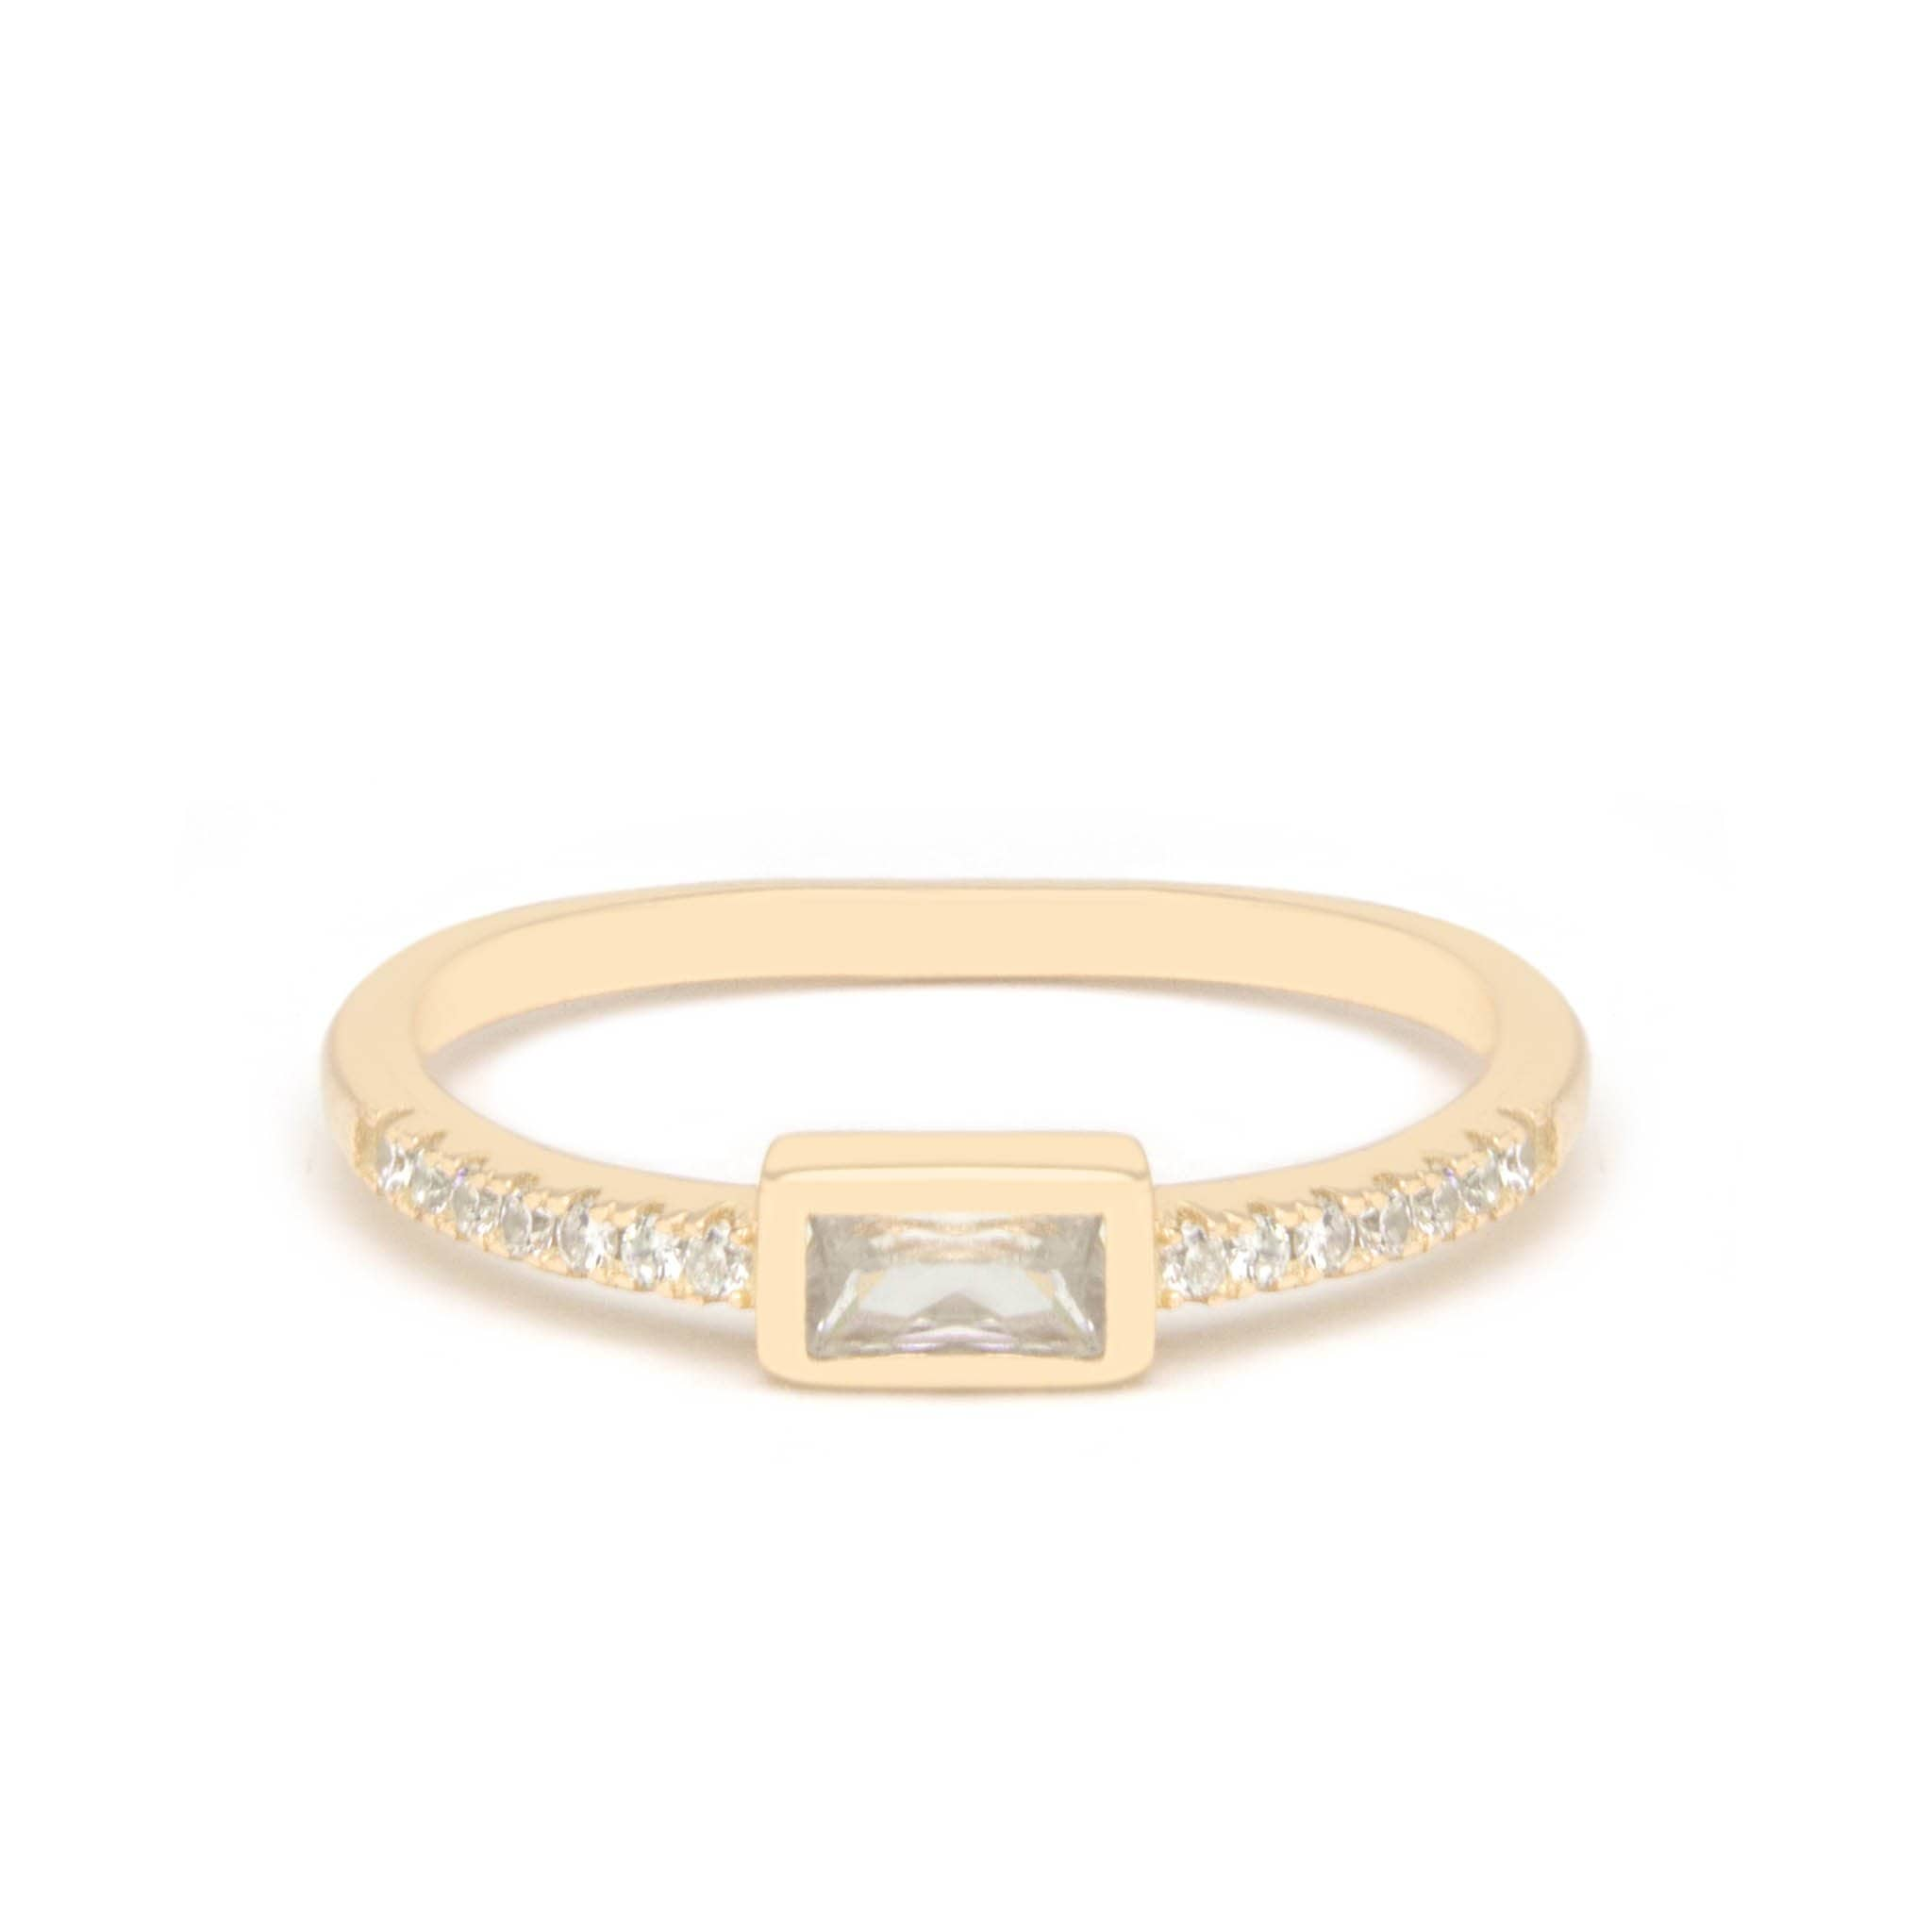 Jeanne's Jewels Rings Yellow Gold / 5 Athena